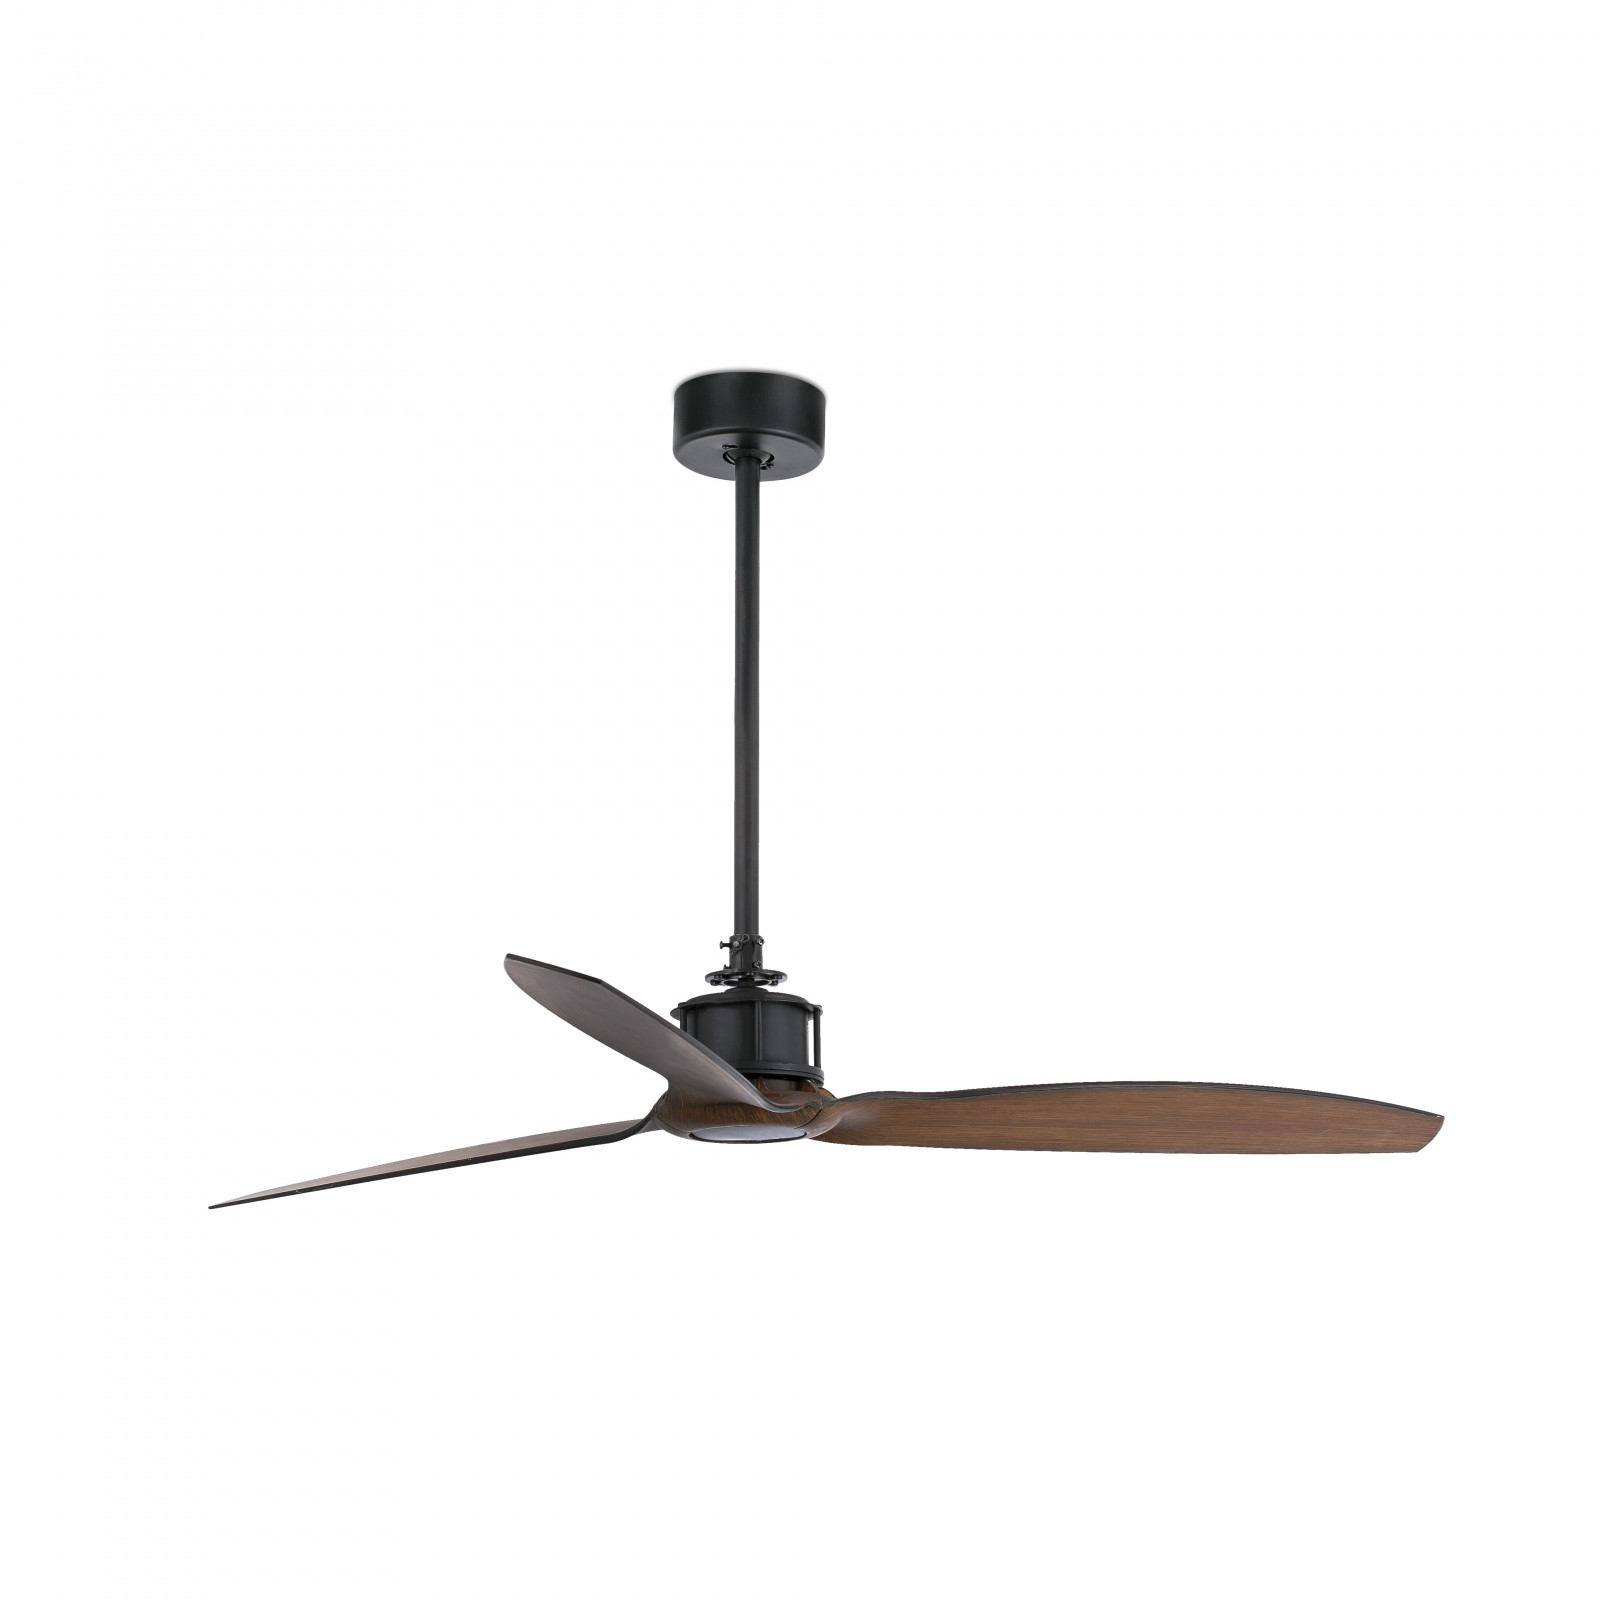 Faro energy saving ceiling fan just fan black with remote control faro energy saving ceiling fan just fan black with remote control aloadofball Gallery